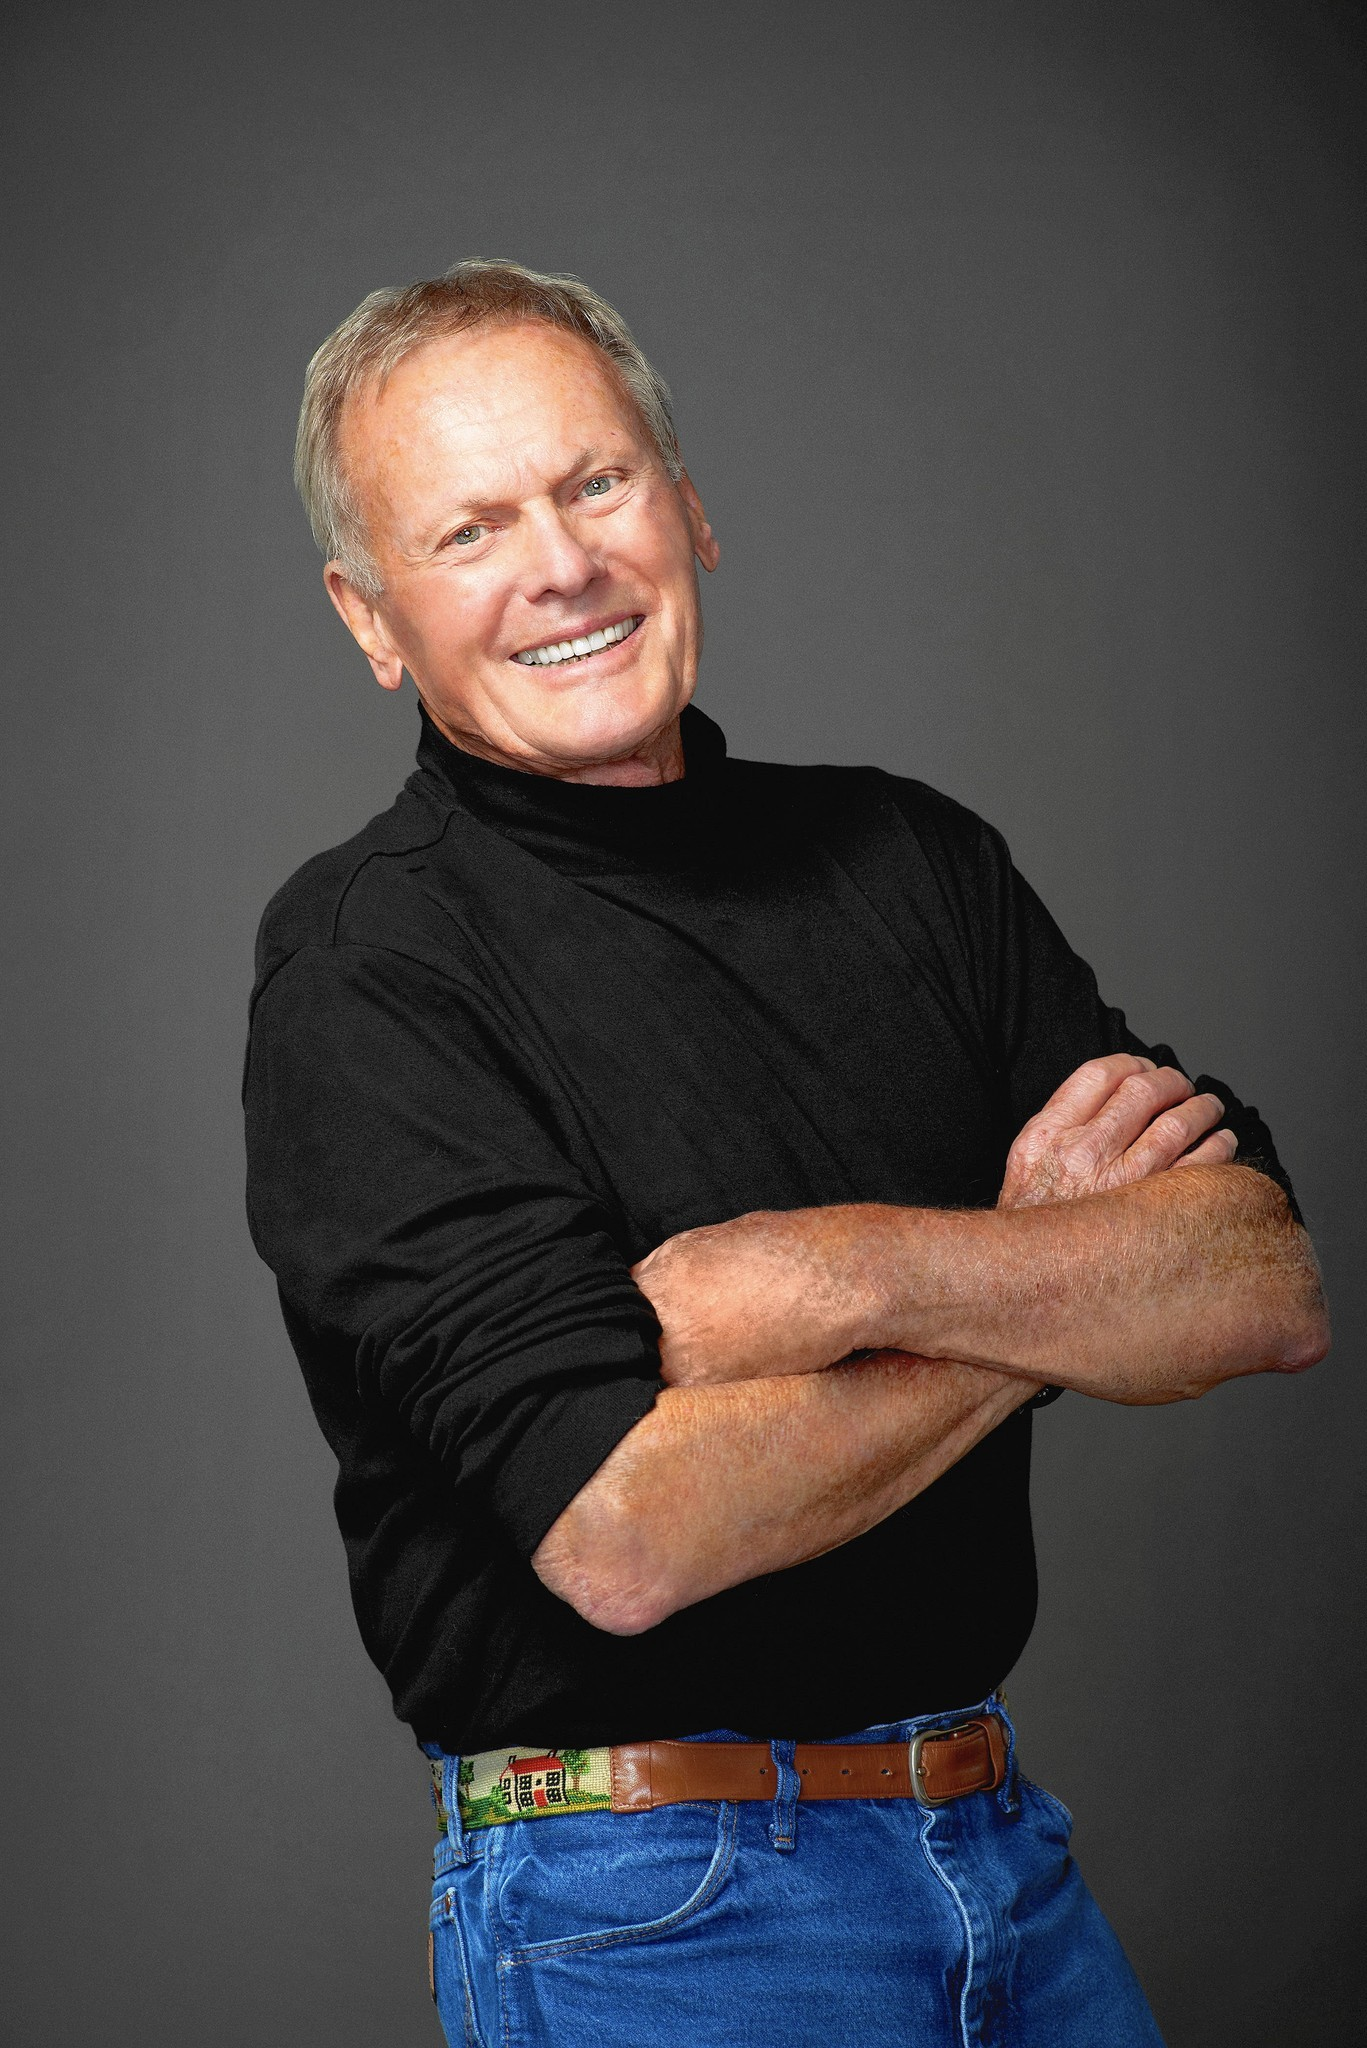 tab hunter - photo #6